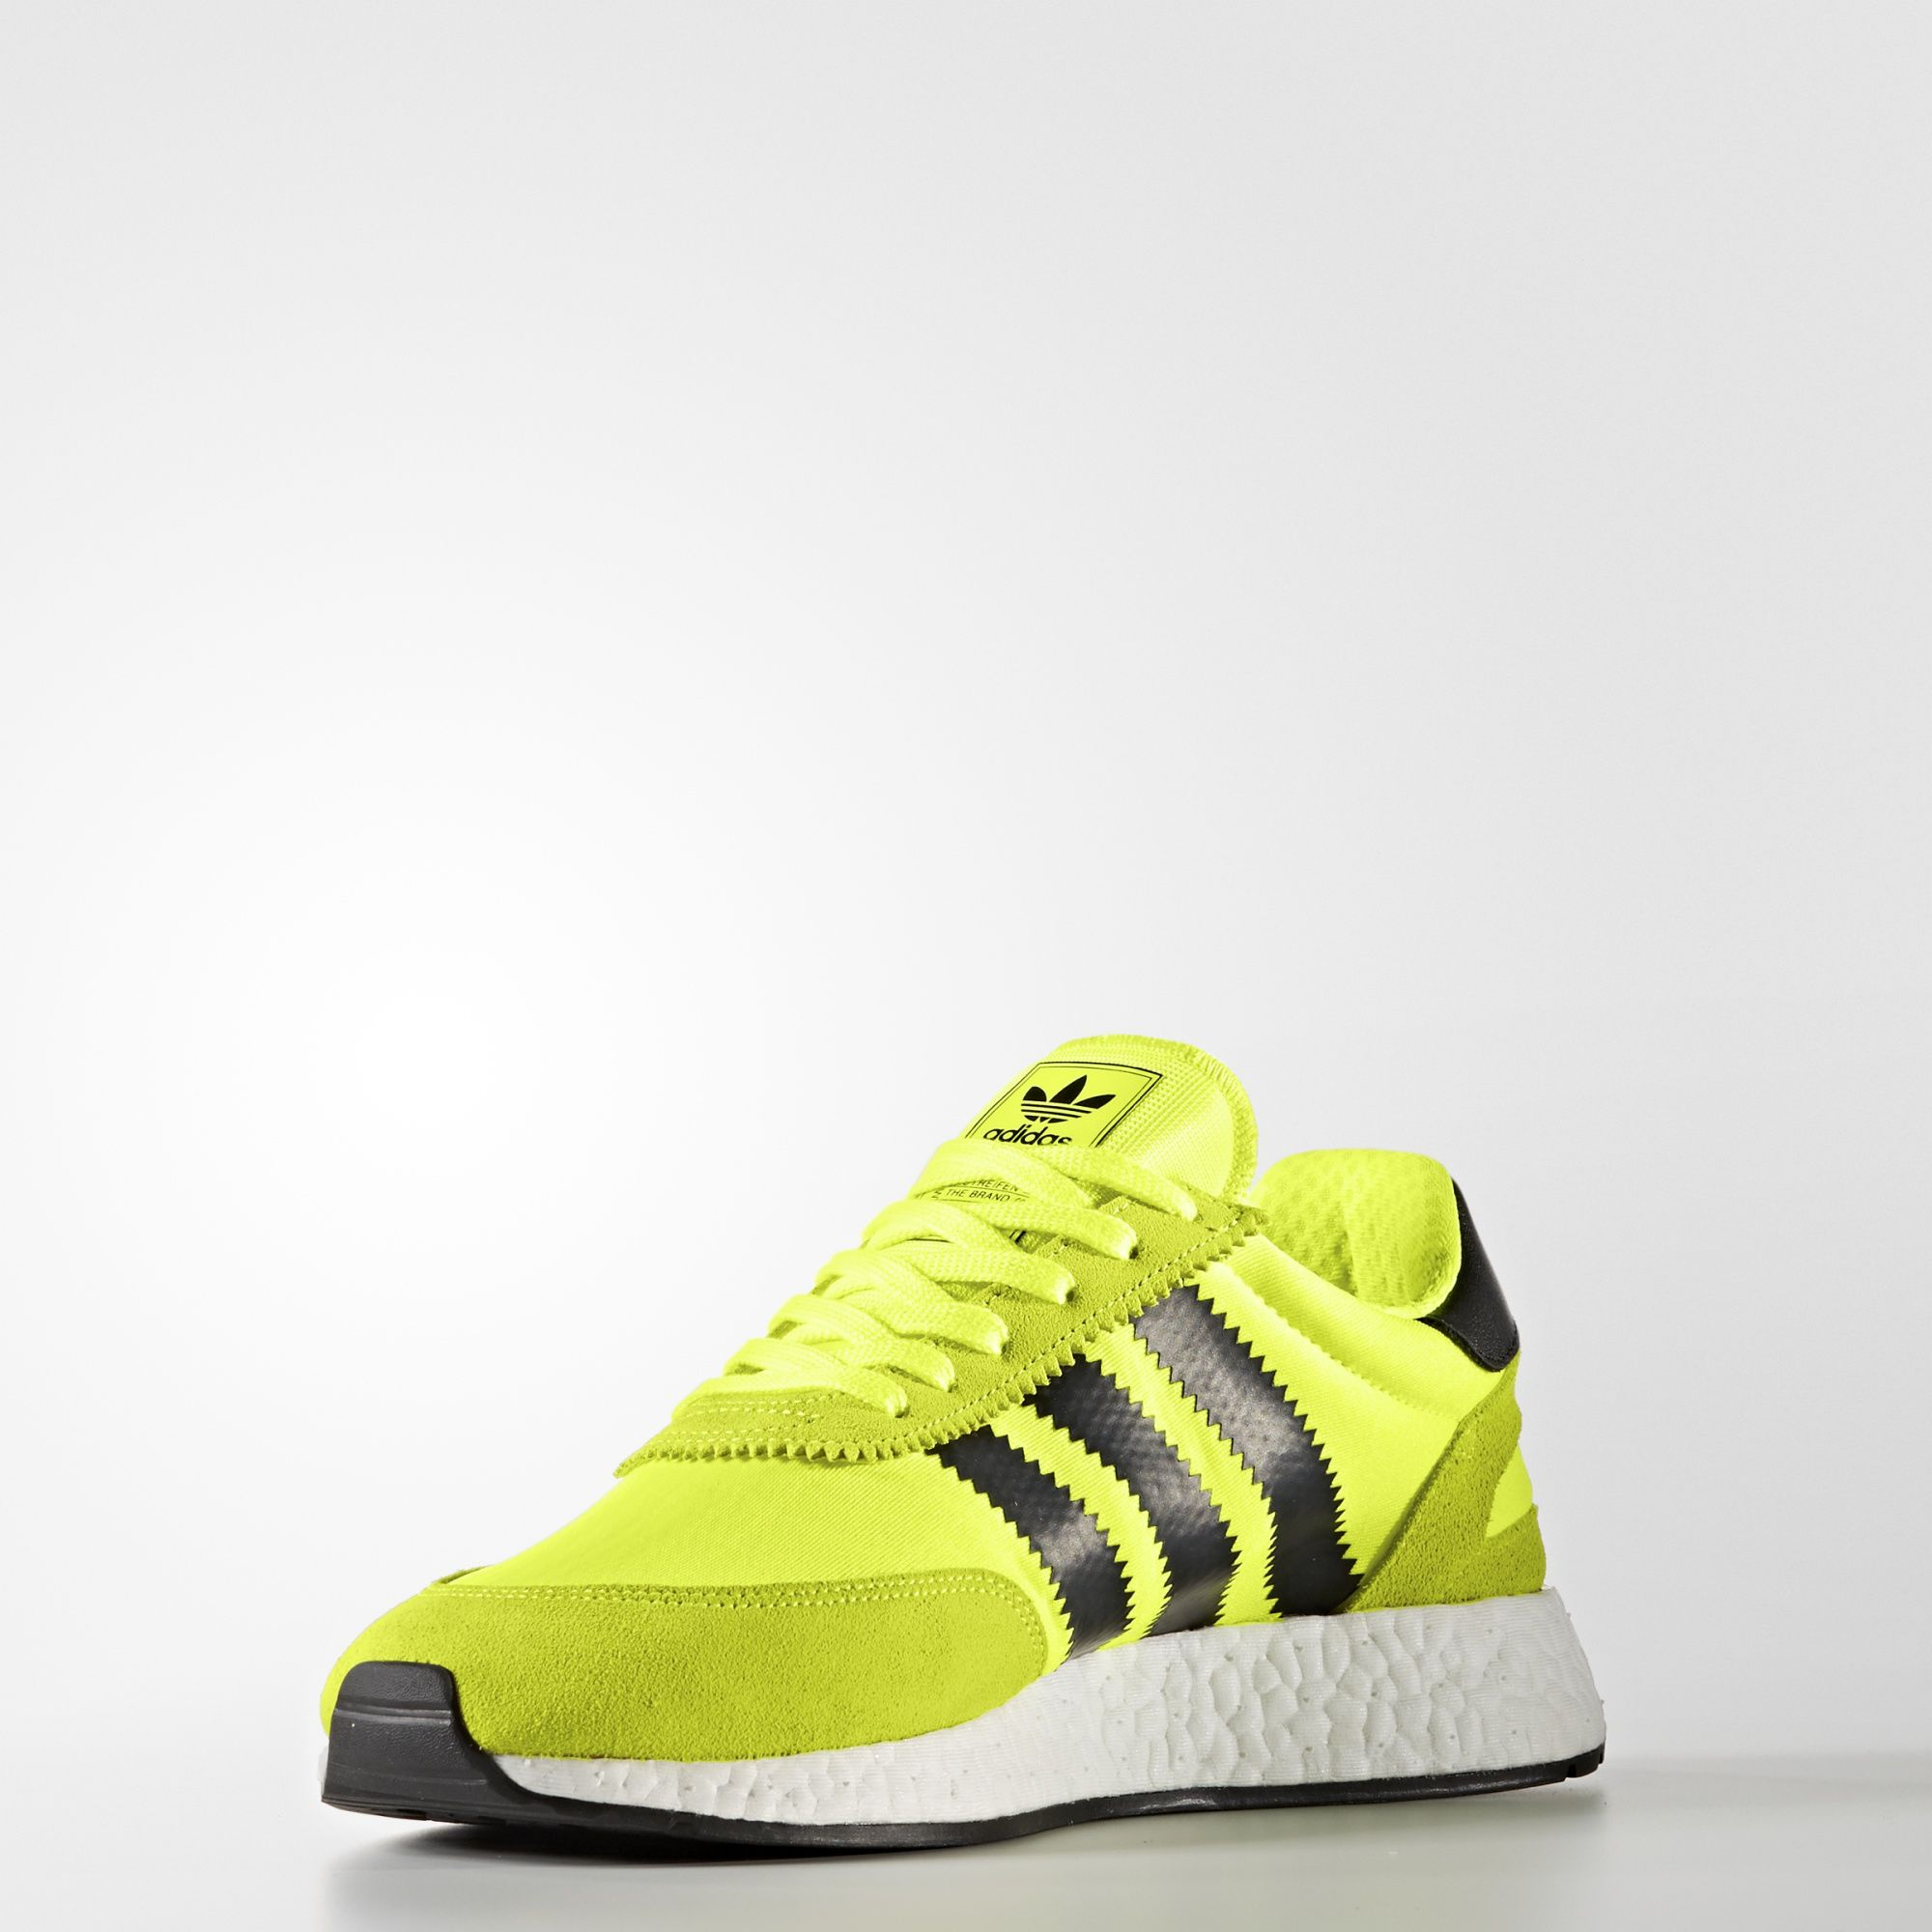 adidas Iniki Runner Solar Yellow BB2094 3